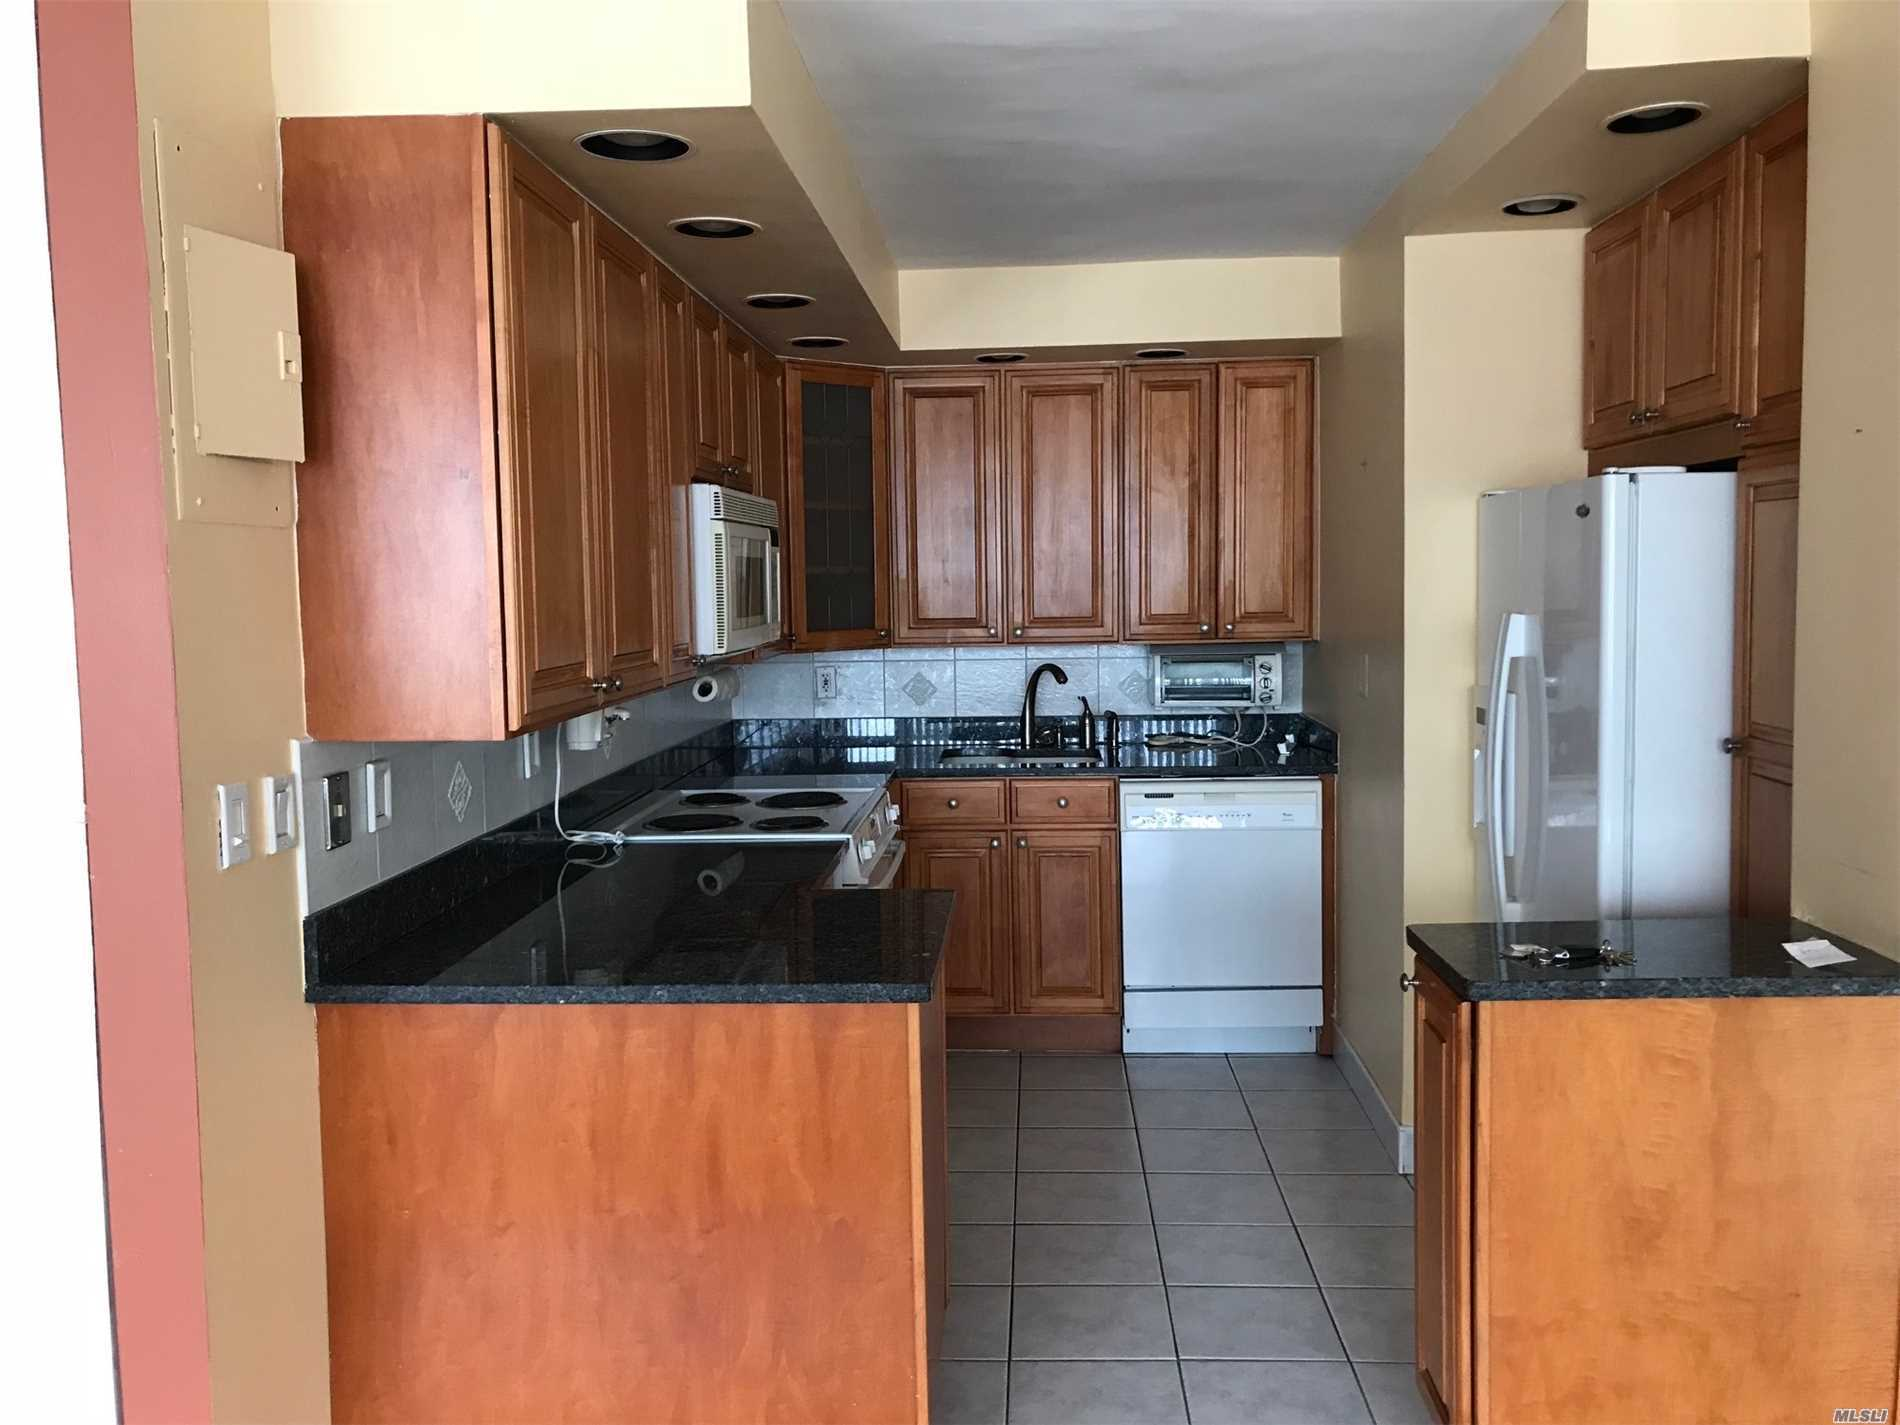 $15K Decorators Concession. Quiet Location With Private House Views. Updated Euro Kitchen. Updated Bath With Jacuzzi Tub. Hardwood Floors In Living Room. California Closets. Parking Space T04 Included In Price - Save $8, 500 On Transfer Fees!